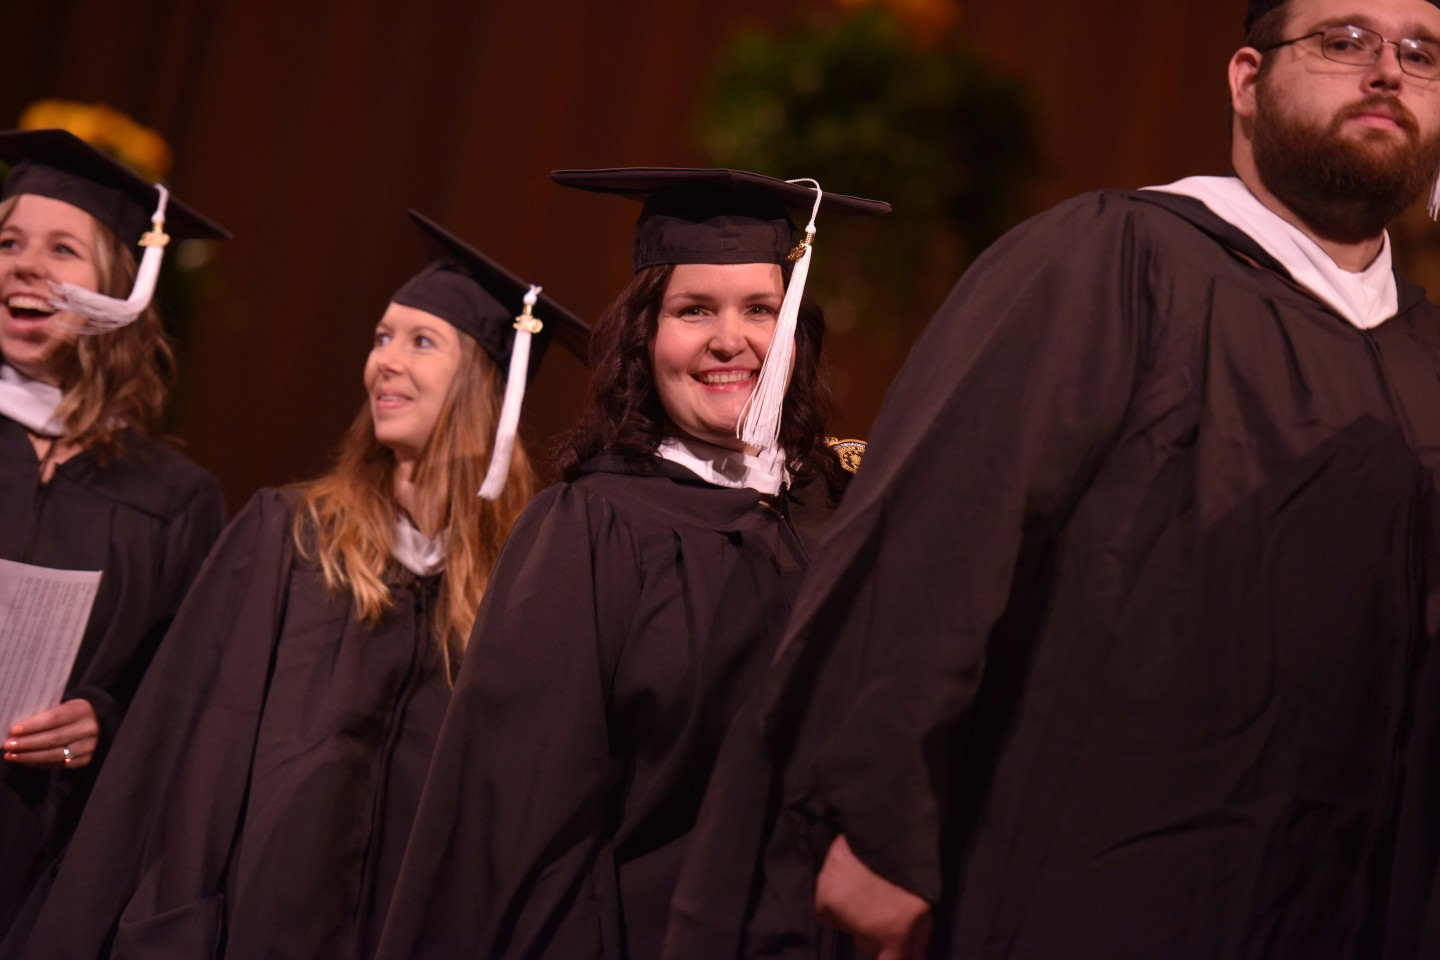 WMU students line up for commencement.